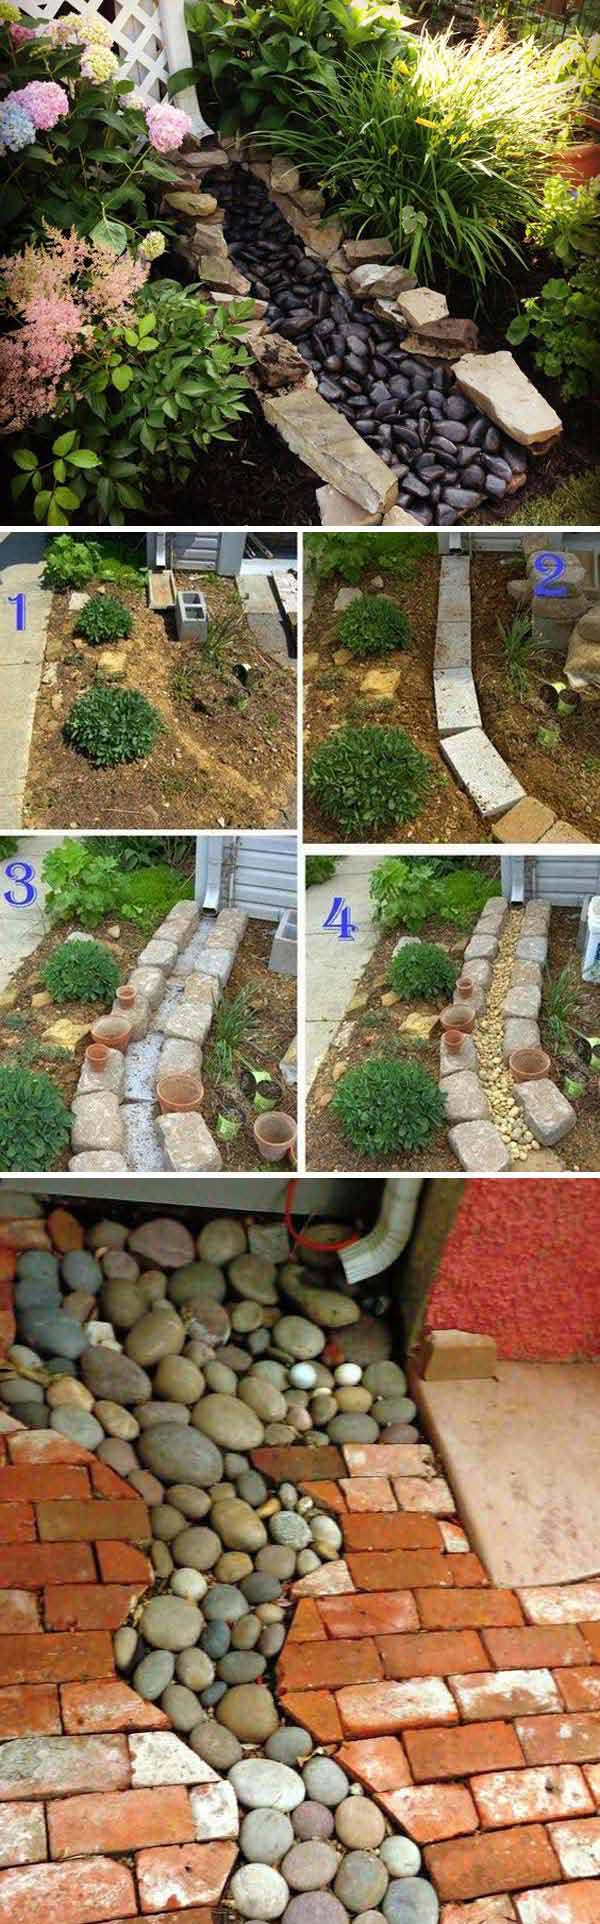 Decorative Yard Drainage : The best diy ideas to create a decorative downspout